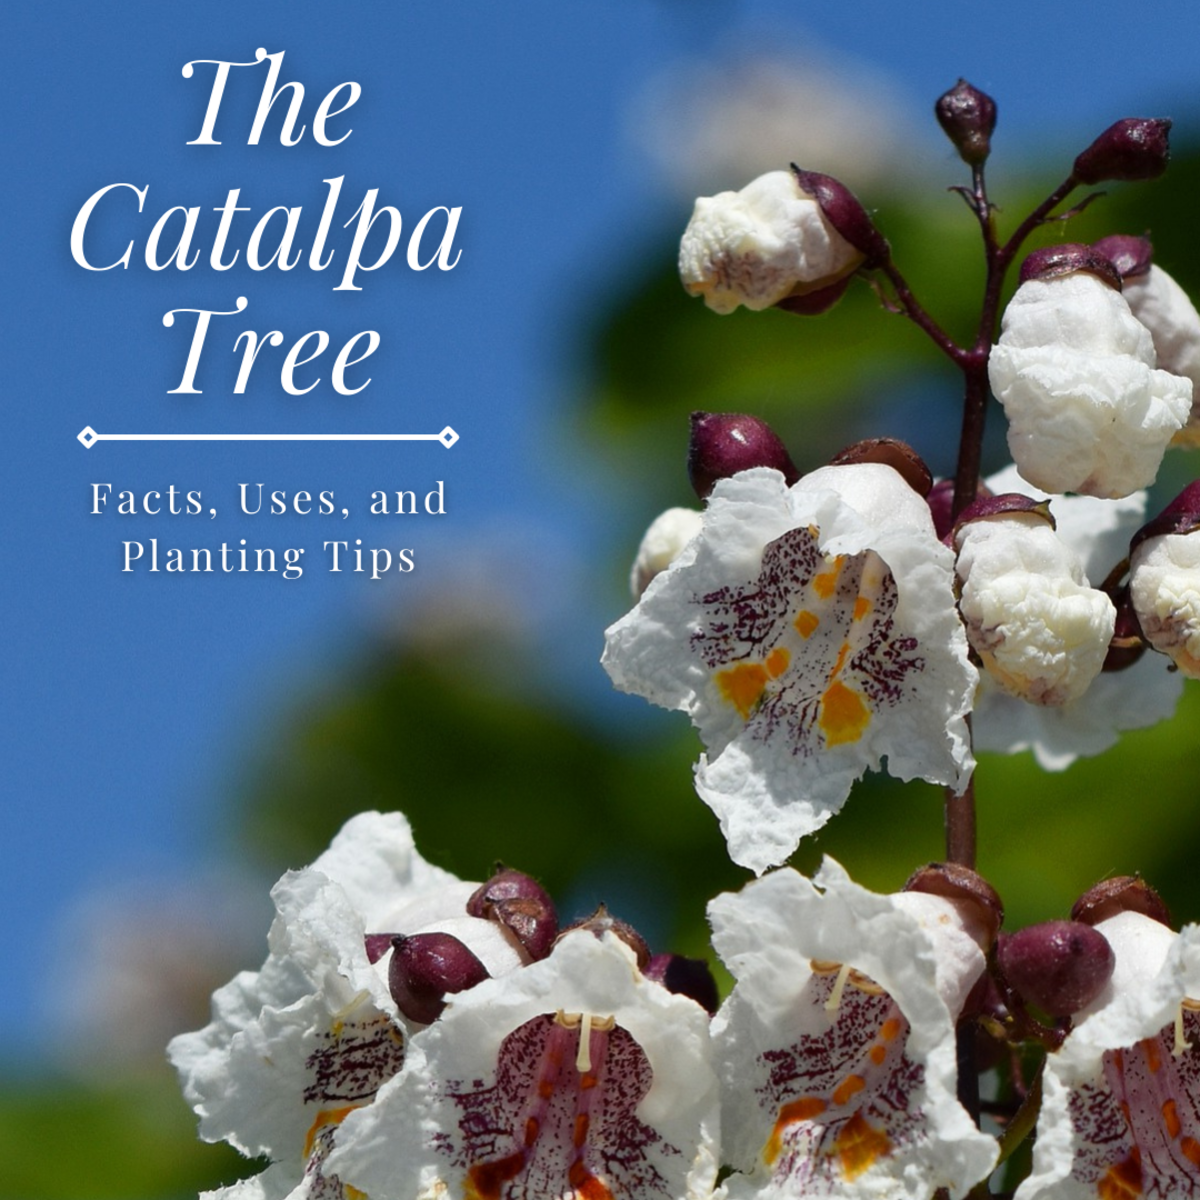 This guide will provide you with plenty of information about the catalpa tree, including growing tips and uses.